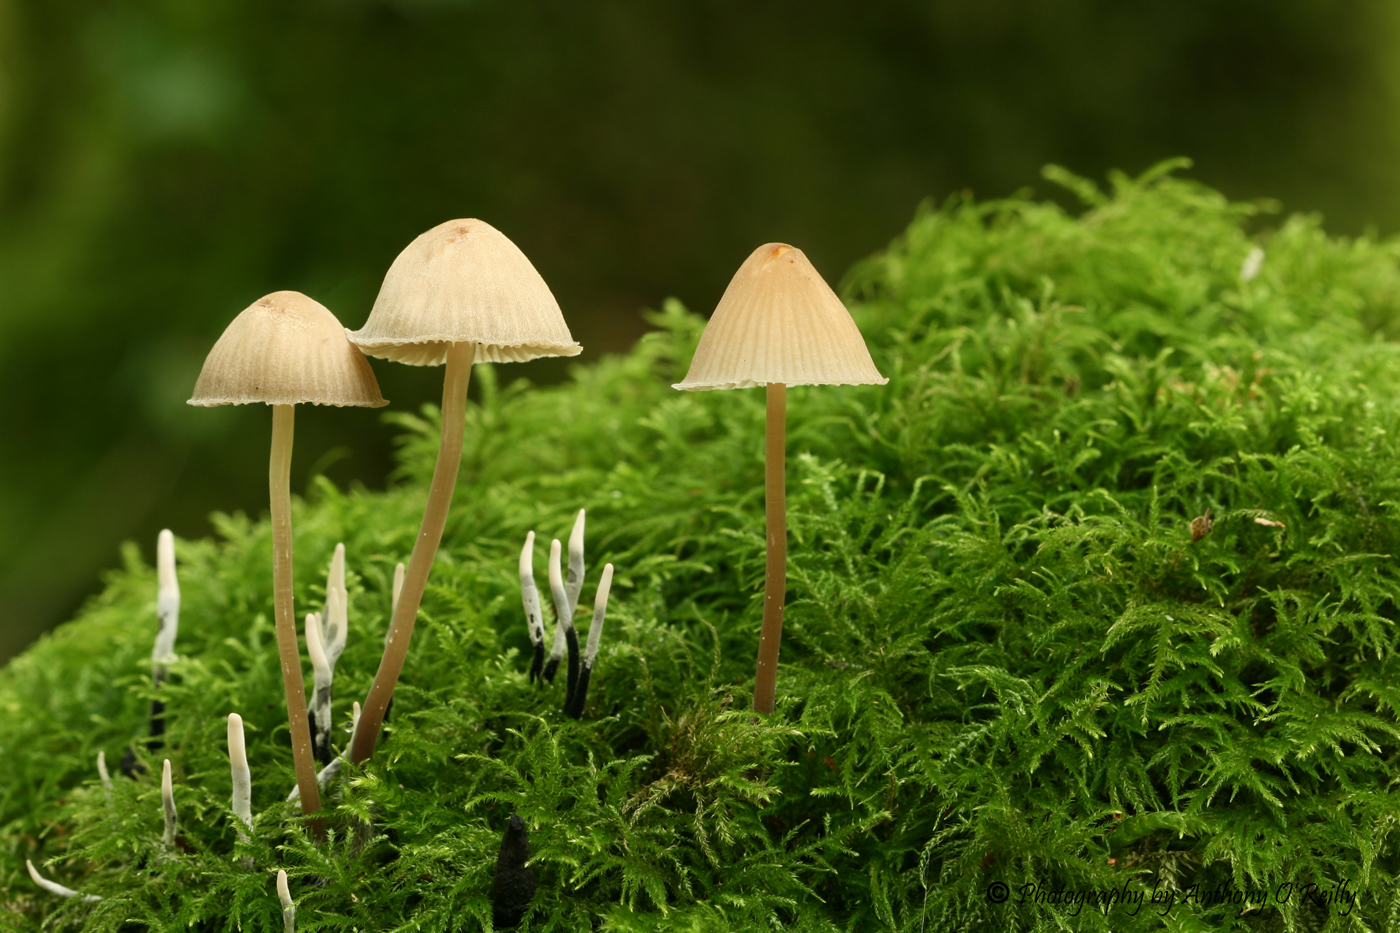 'Toadstools' by Tony O'Reilly